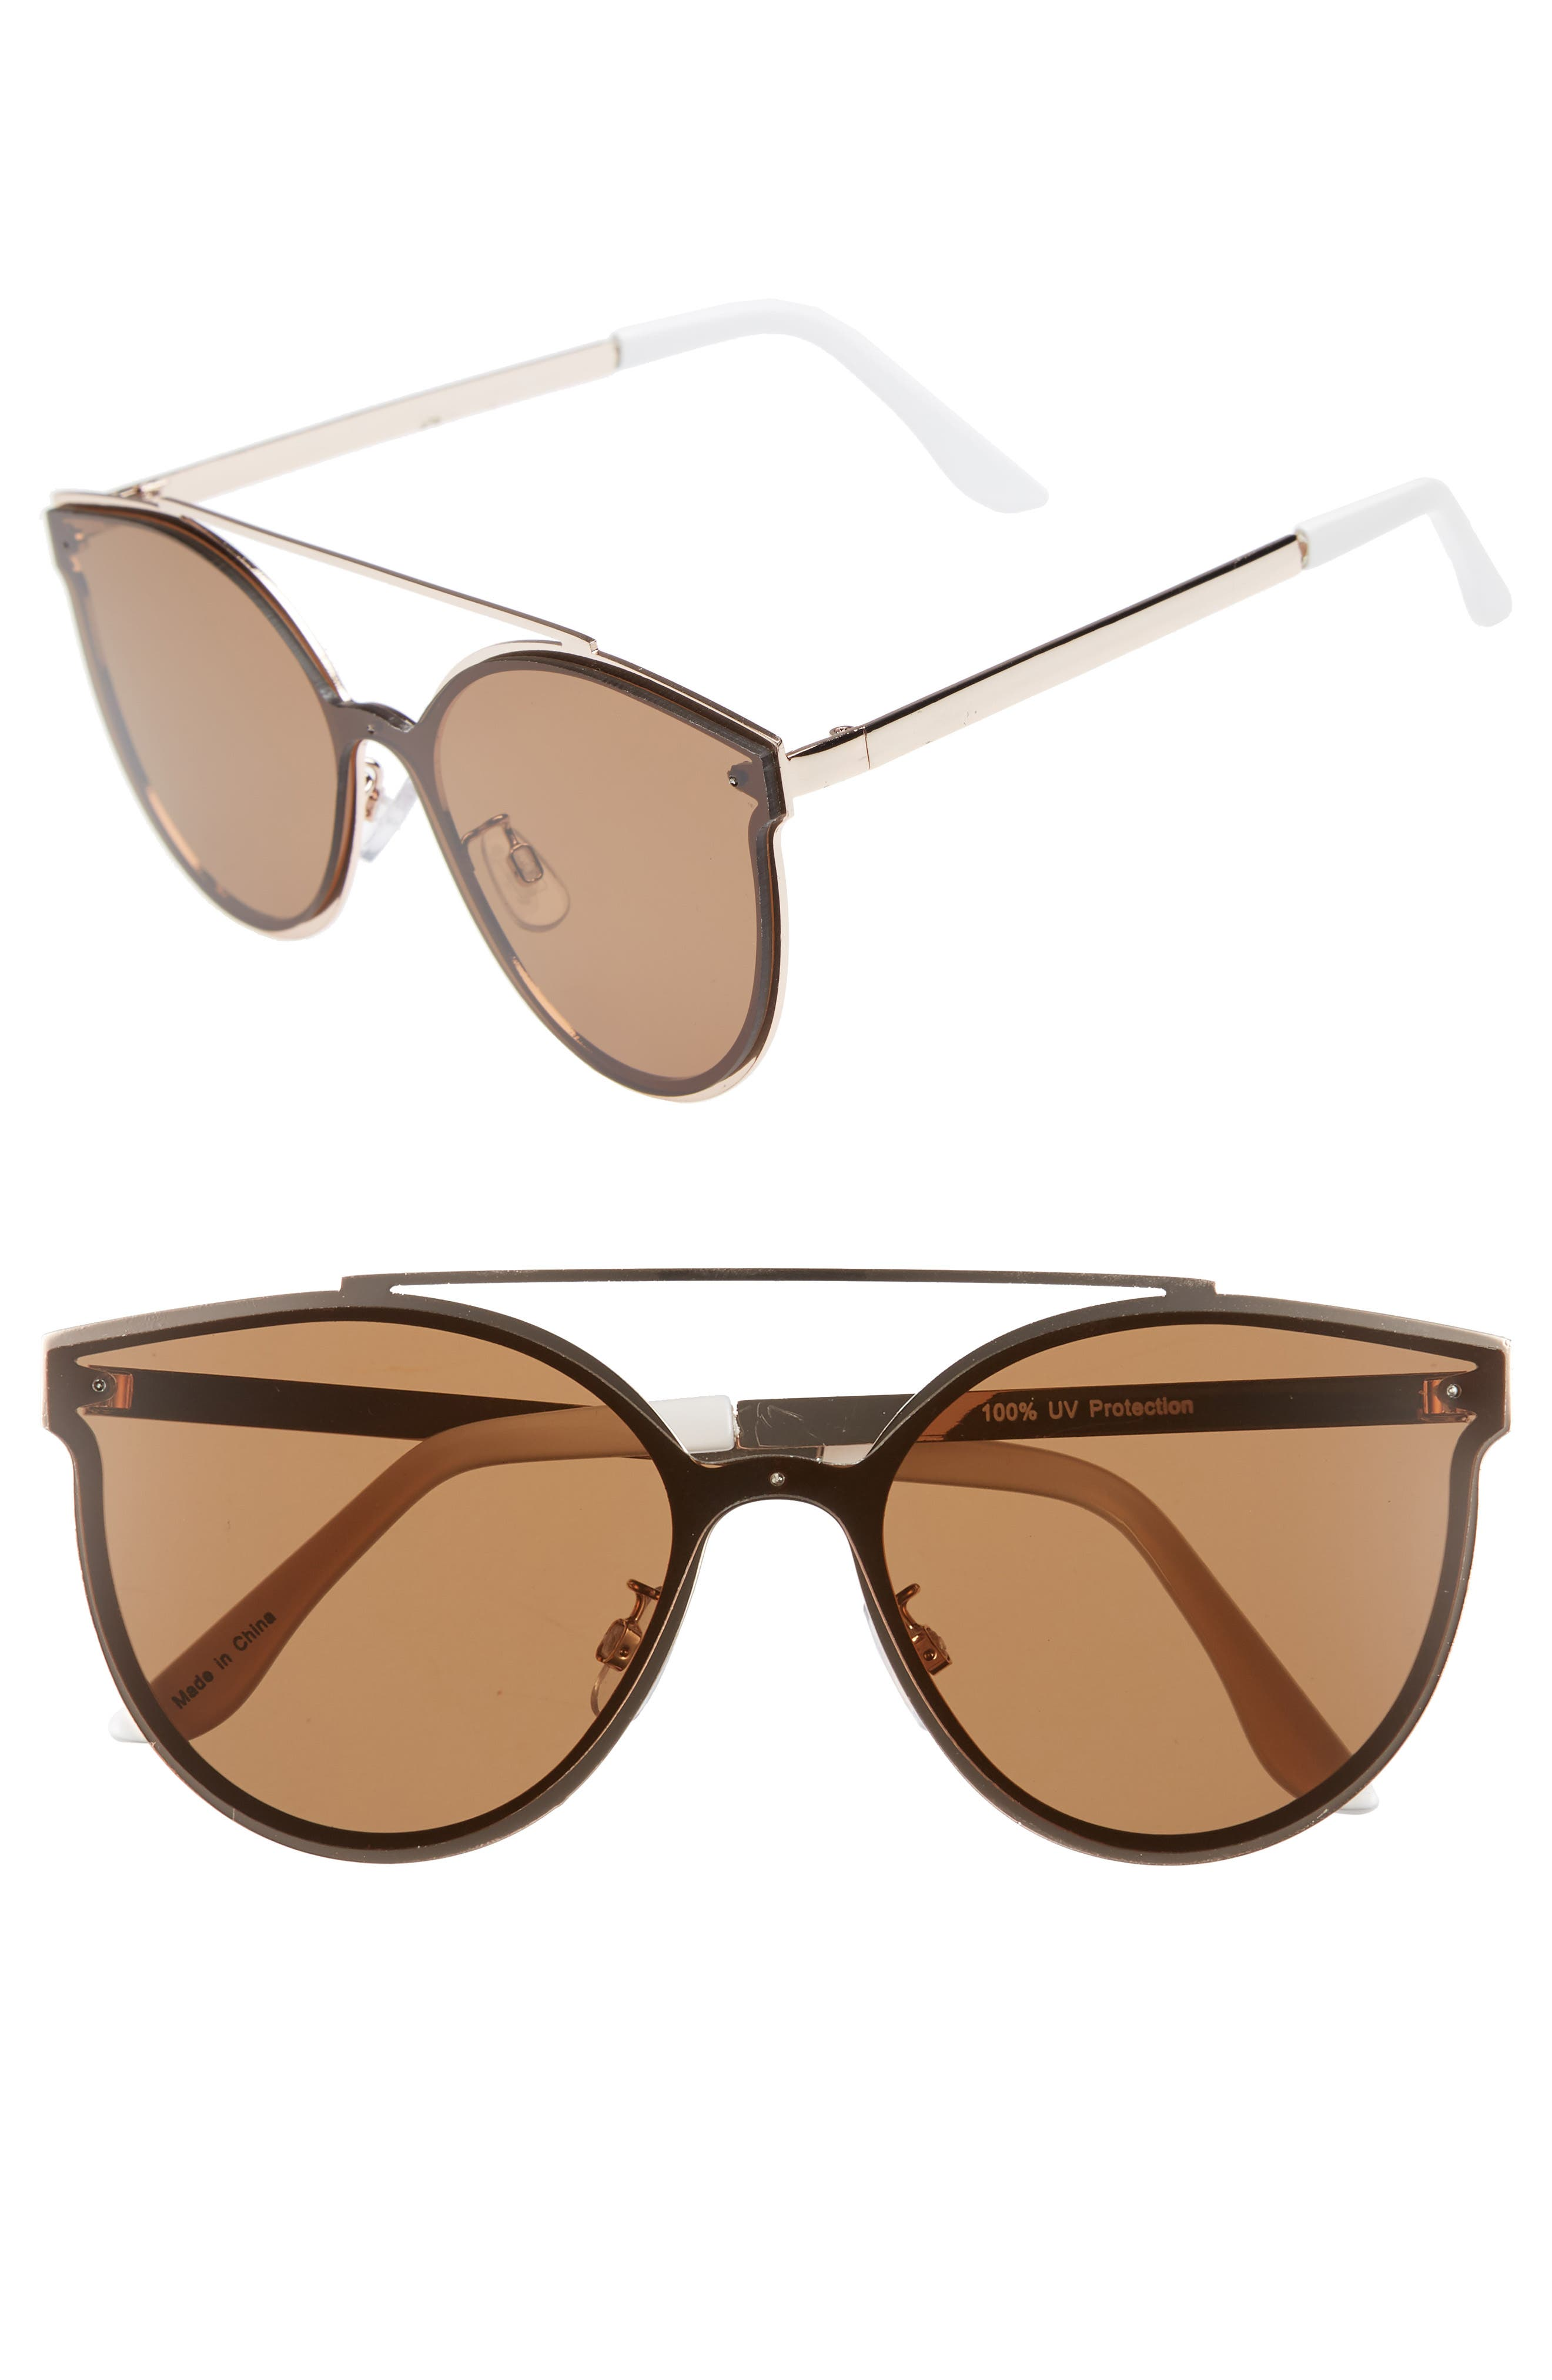 58mm Brow Bar Sunglasses,                             Main thumbnail 1, color,                             GOLD